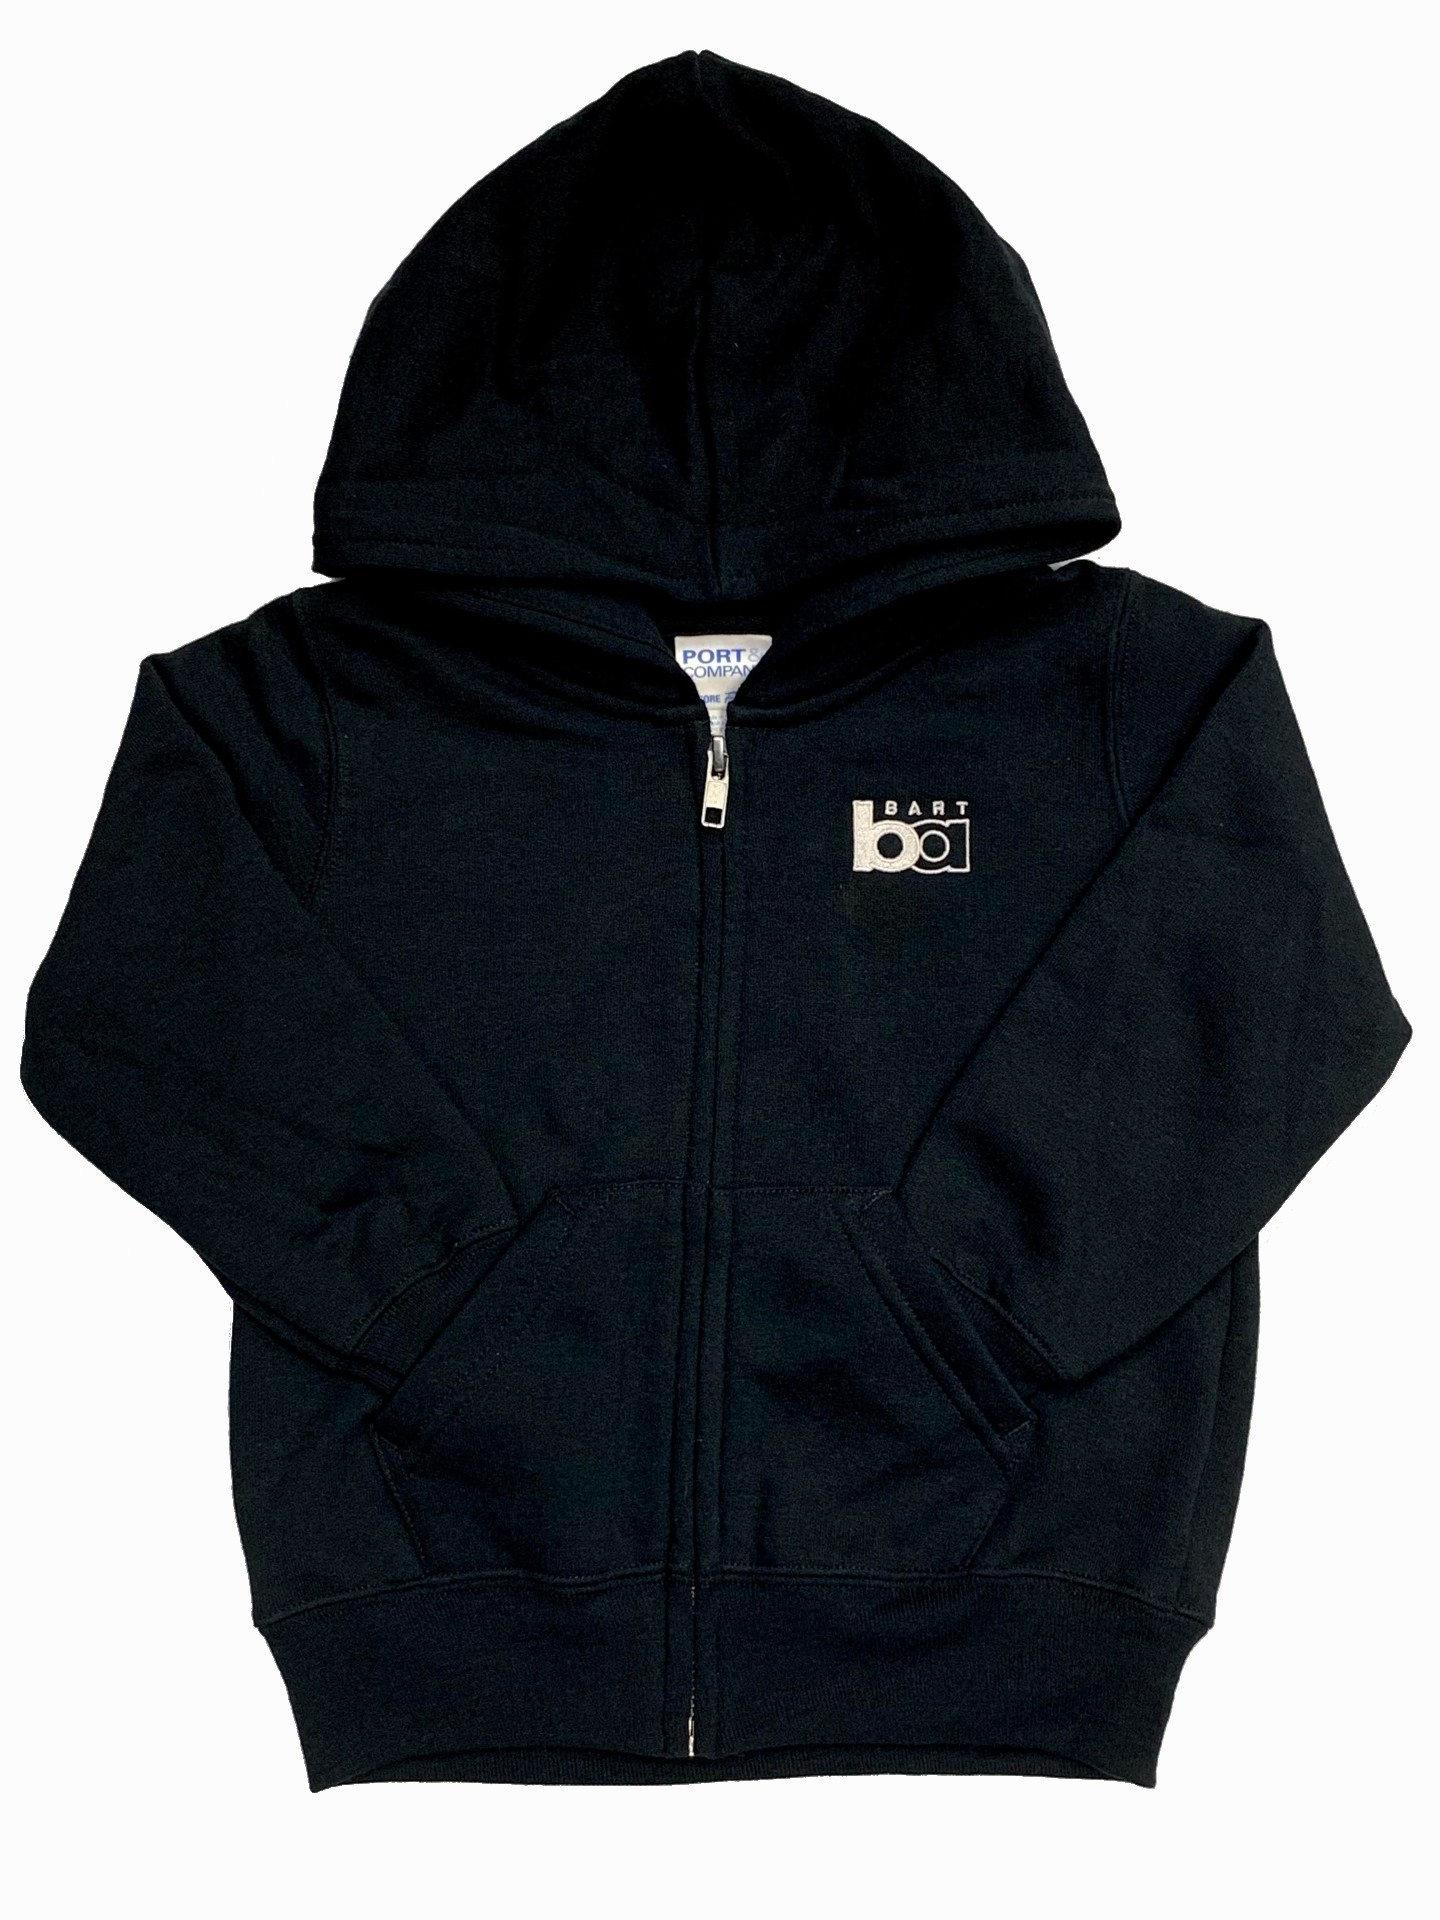 Port & Company BART Hoodie Toddler